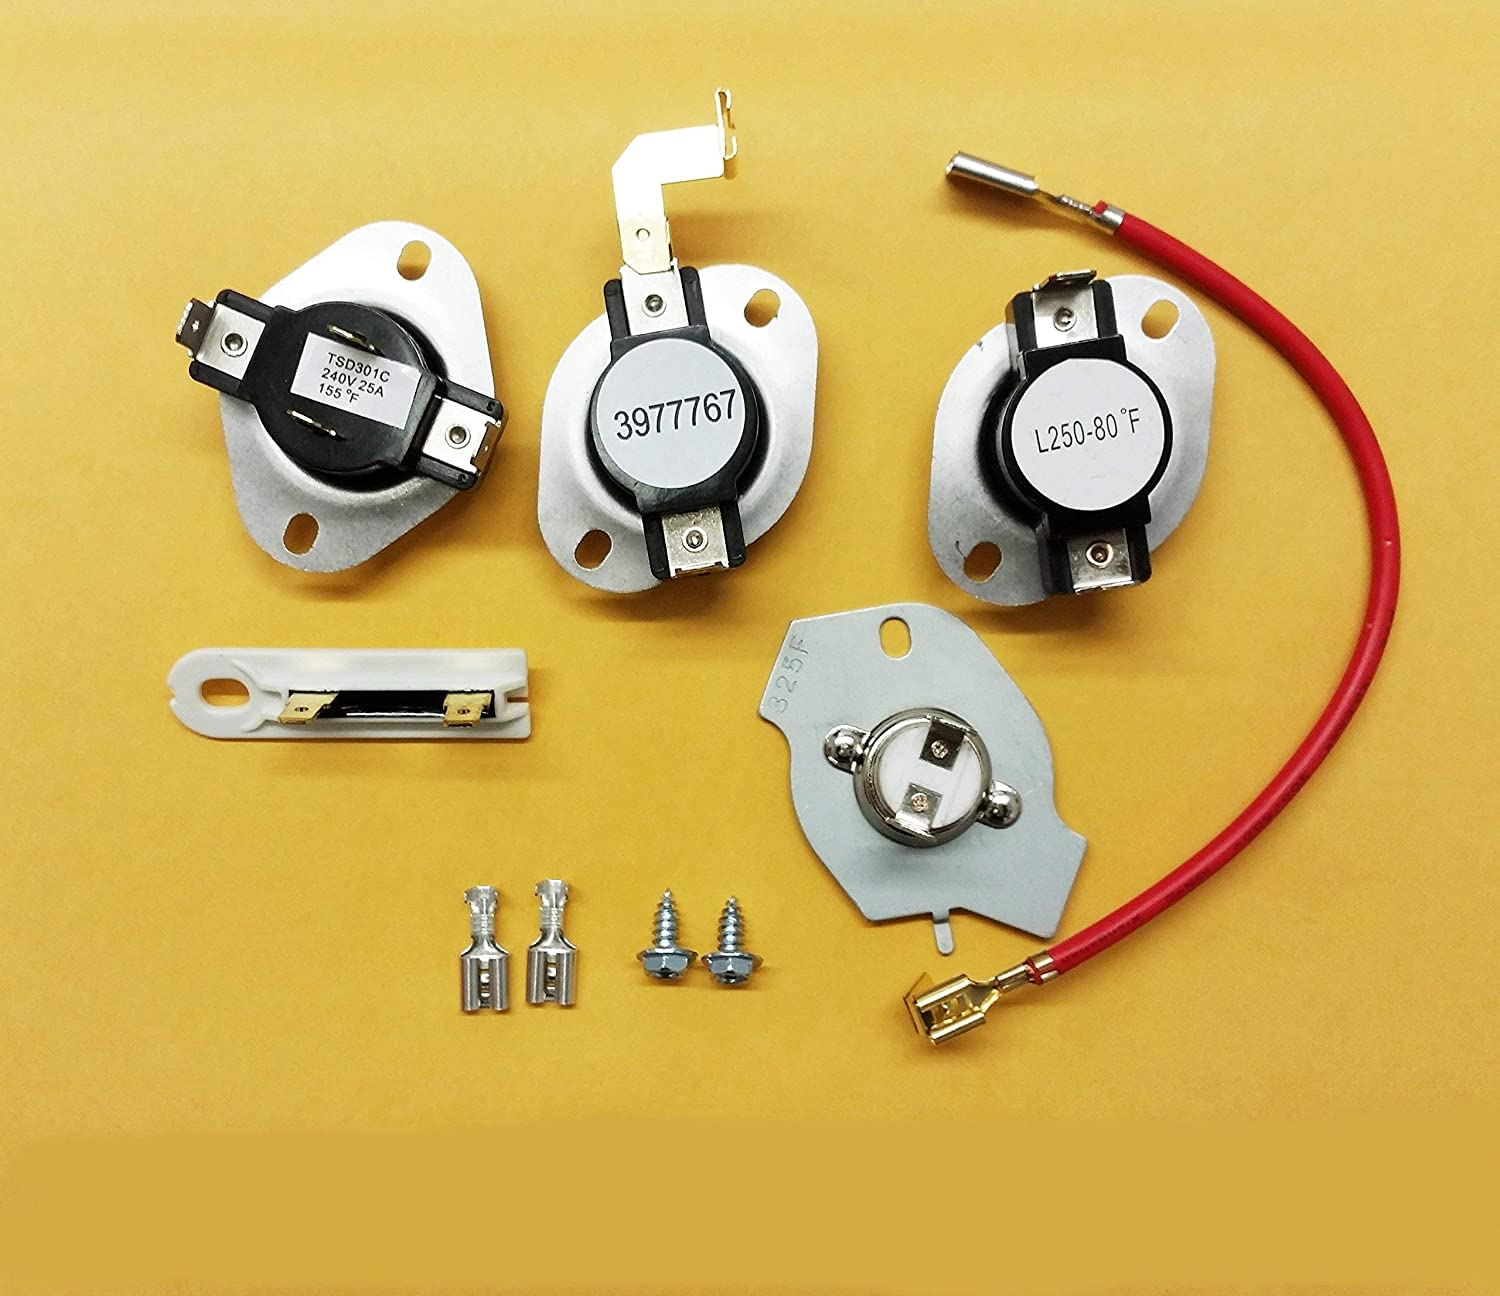 PARTS 3977767 3392519 3387134 279816 KENMORE SEARS CLOTHES DRYER THERMOSTAT KIT